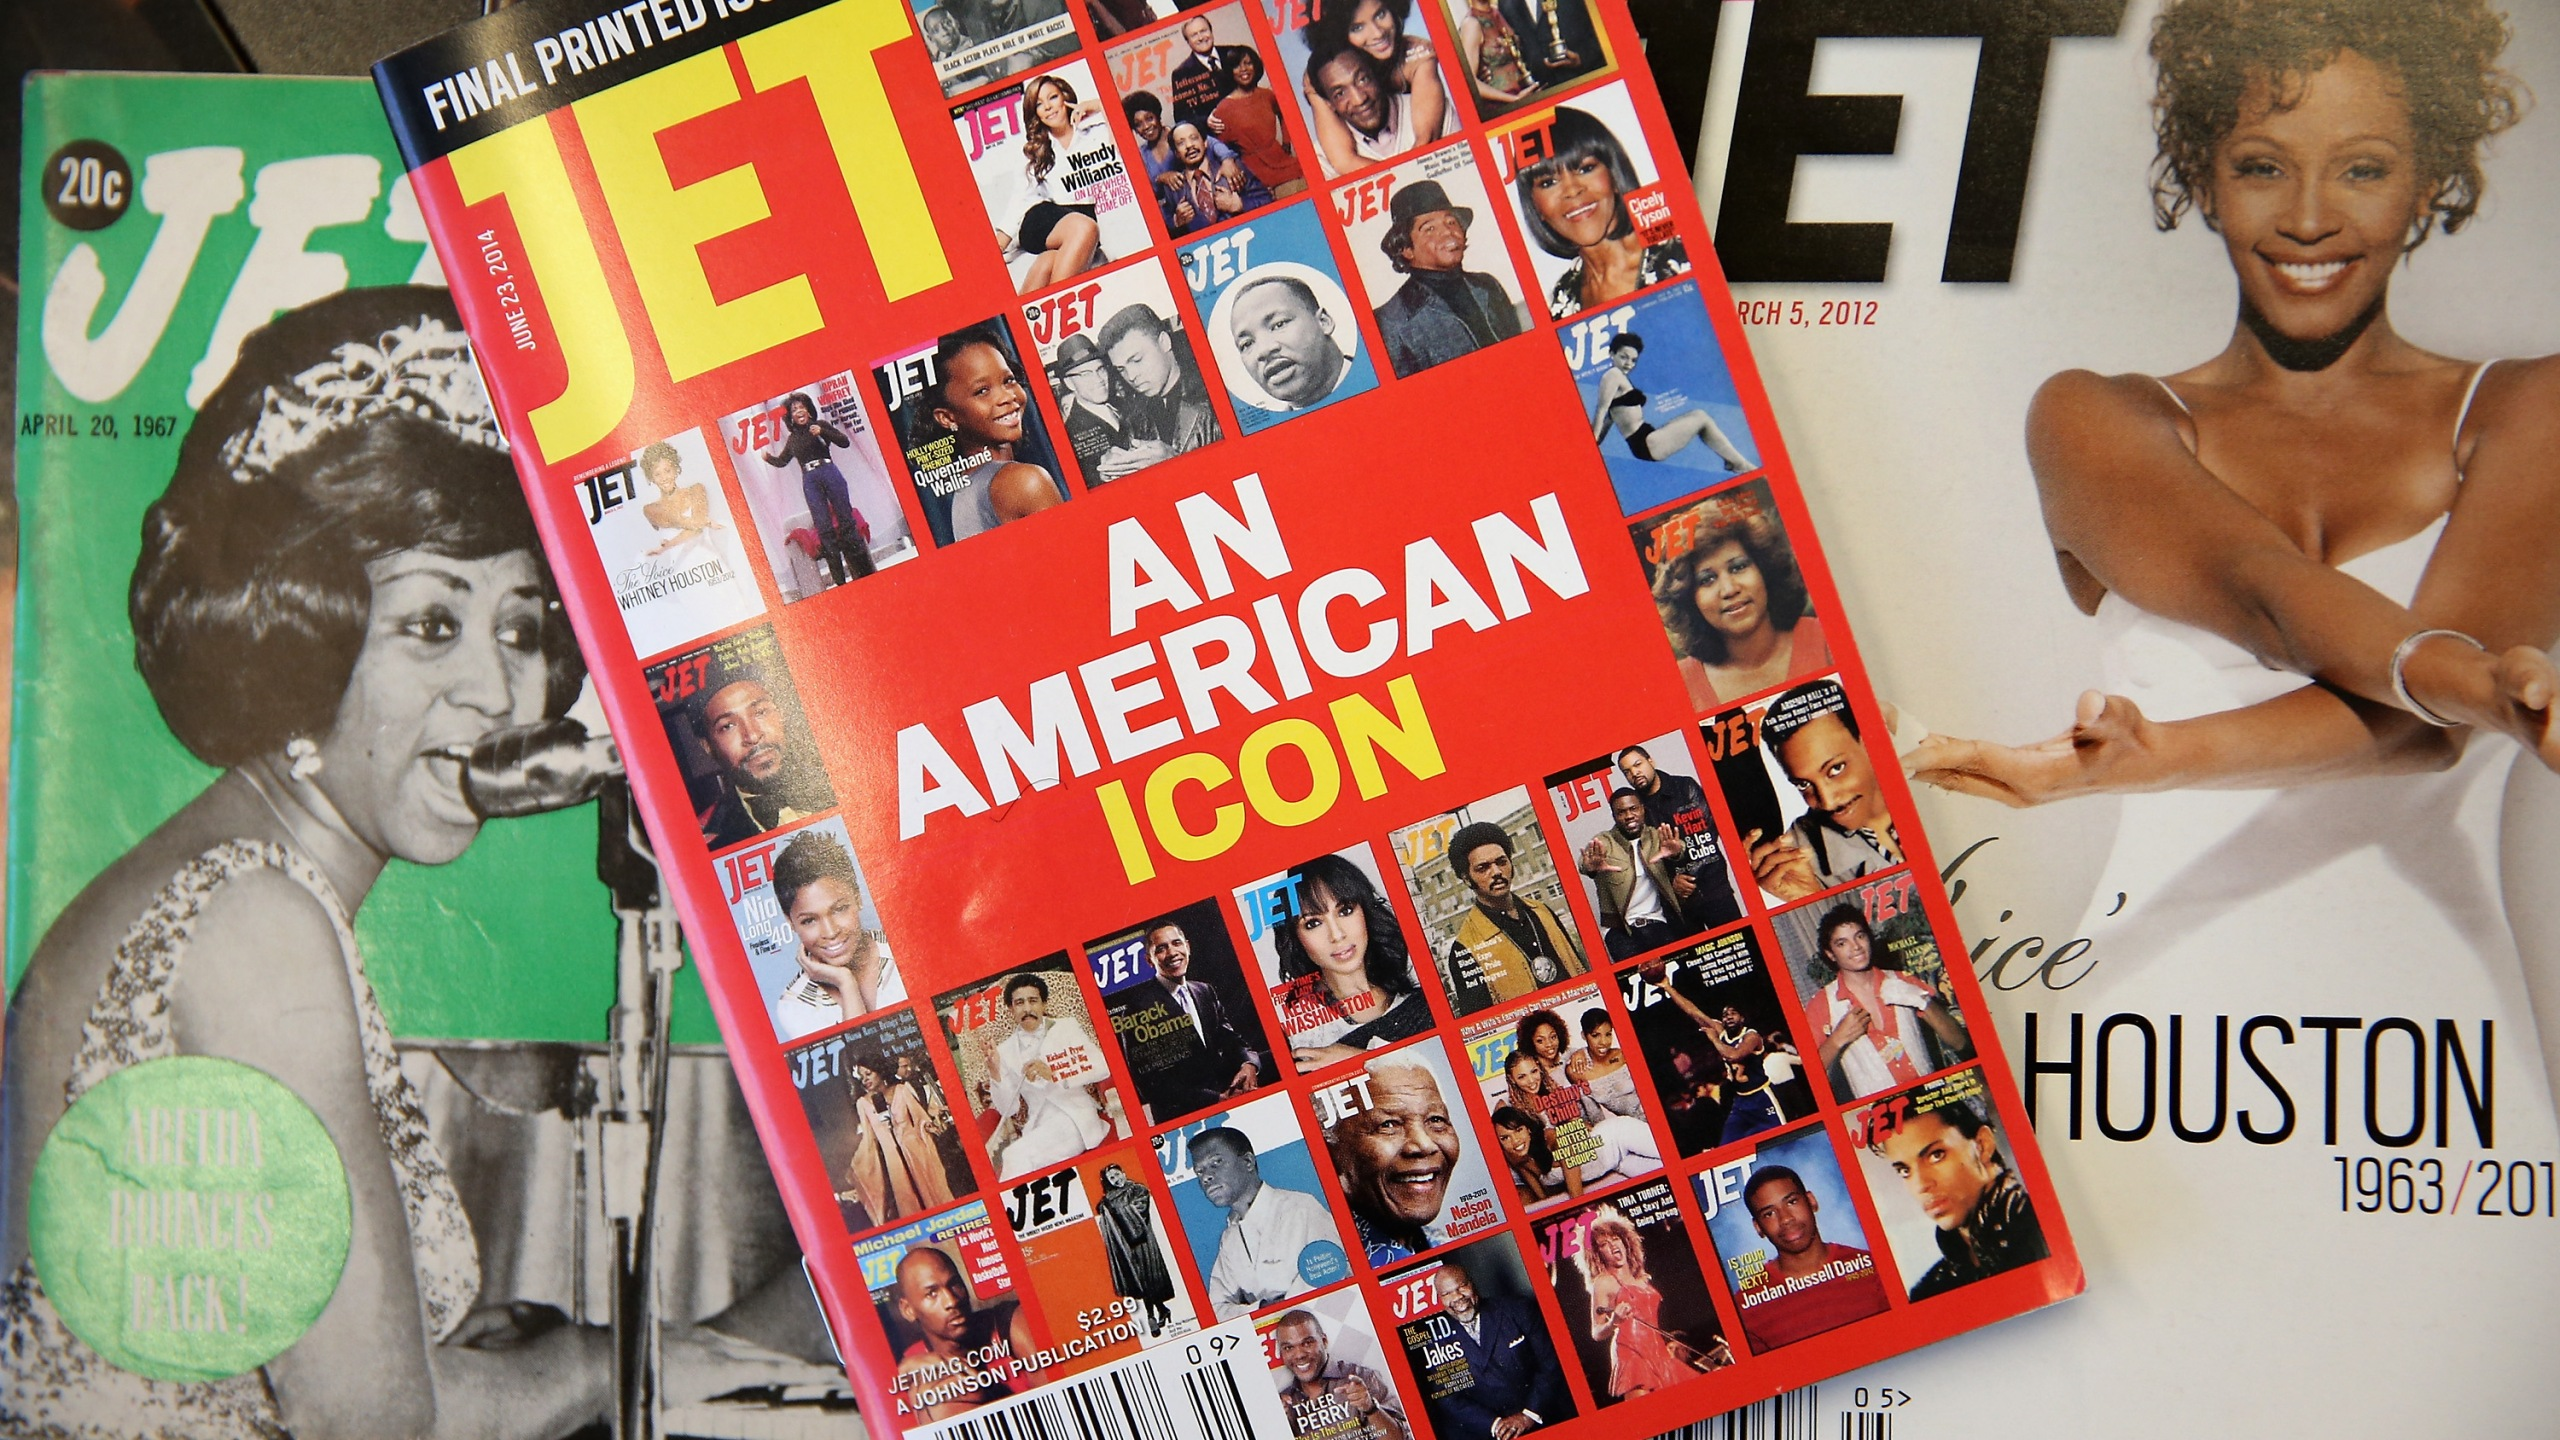 """The final print edition of Jet magazine with a cover declaring it """"an American icon"""" is displayed with vintage copies of the magazine at the Chicago offices of Johnson Publishing Company on June 9, 2014. (Credit: Scott Olson / Getty Images)"""